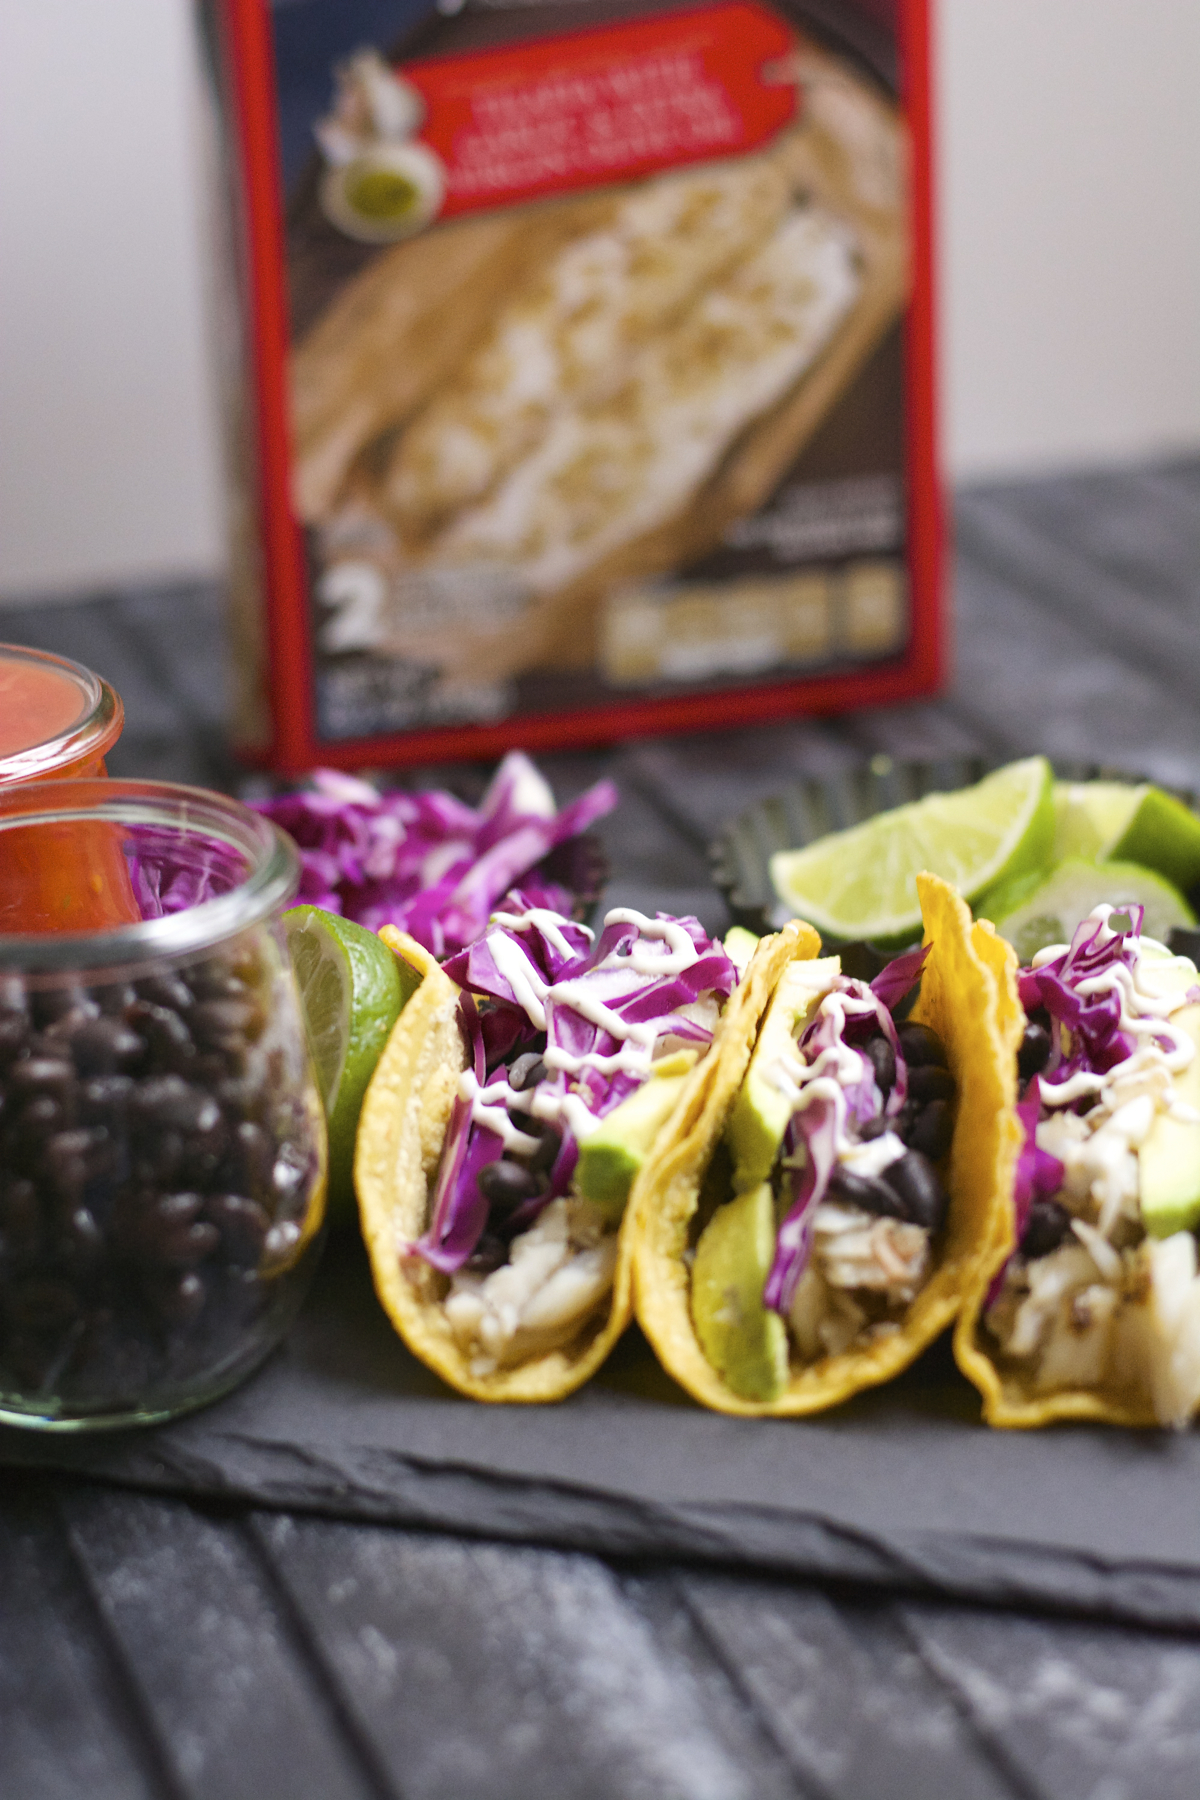 These light and healthy Avocado and Black Bean Fish Tacos with Jalapeño Ranch Sauce are packed with flavor and ready in just 20 minutes! This low carb meal is gluten free and perfect for busy weeknights!